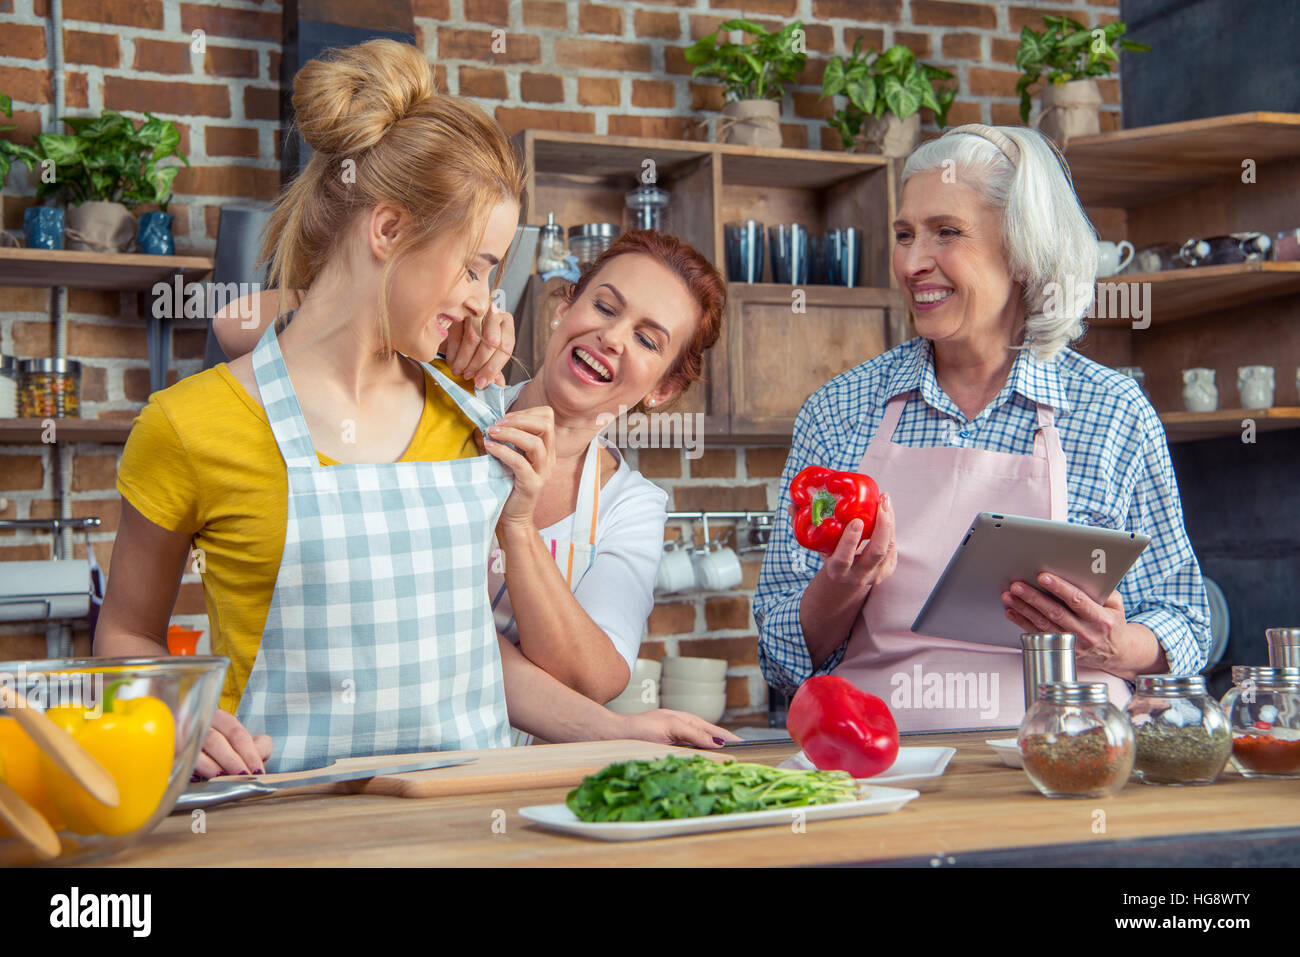 Smiling family cooking together in kitchen - Stock Image